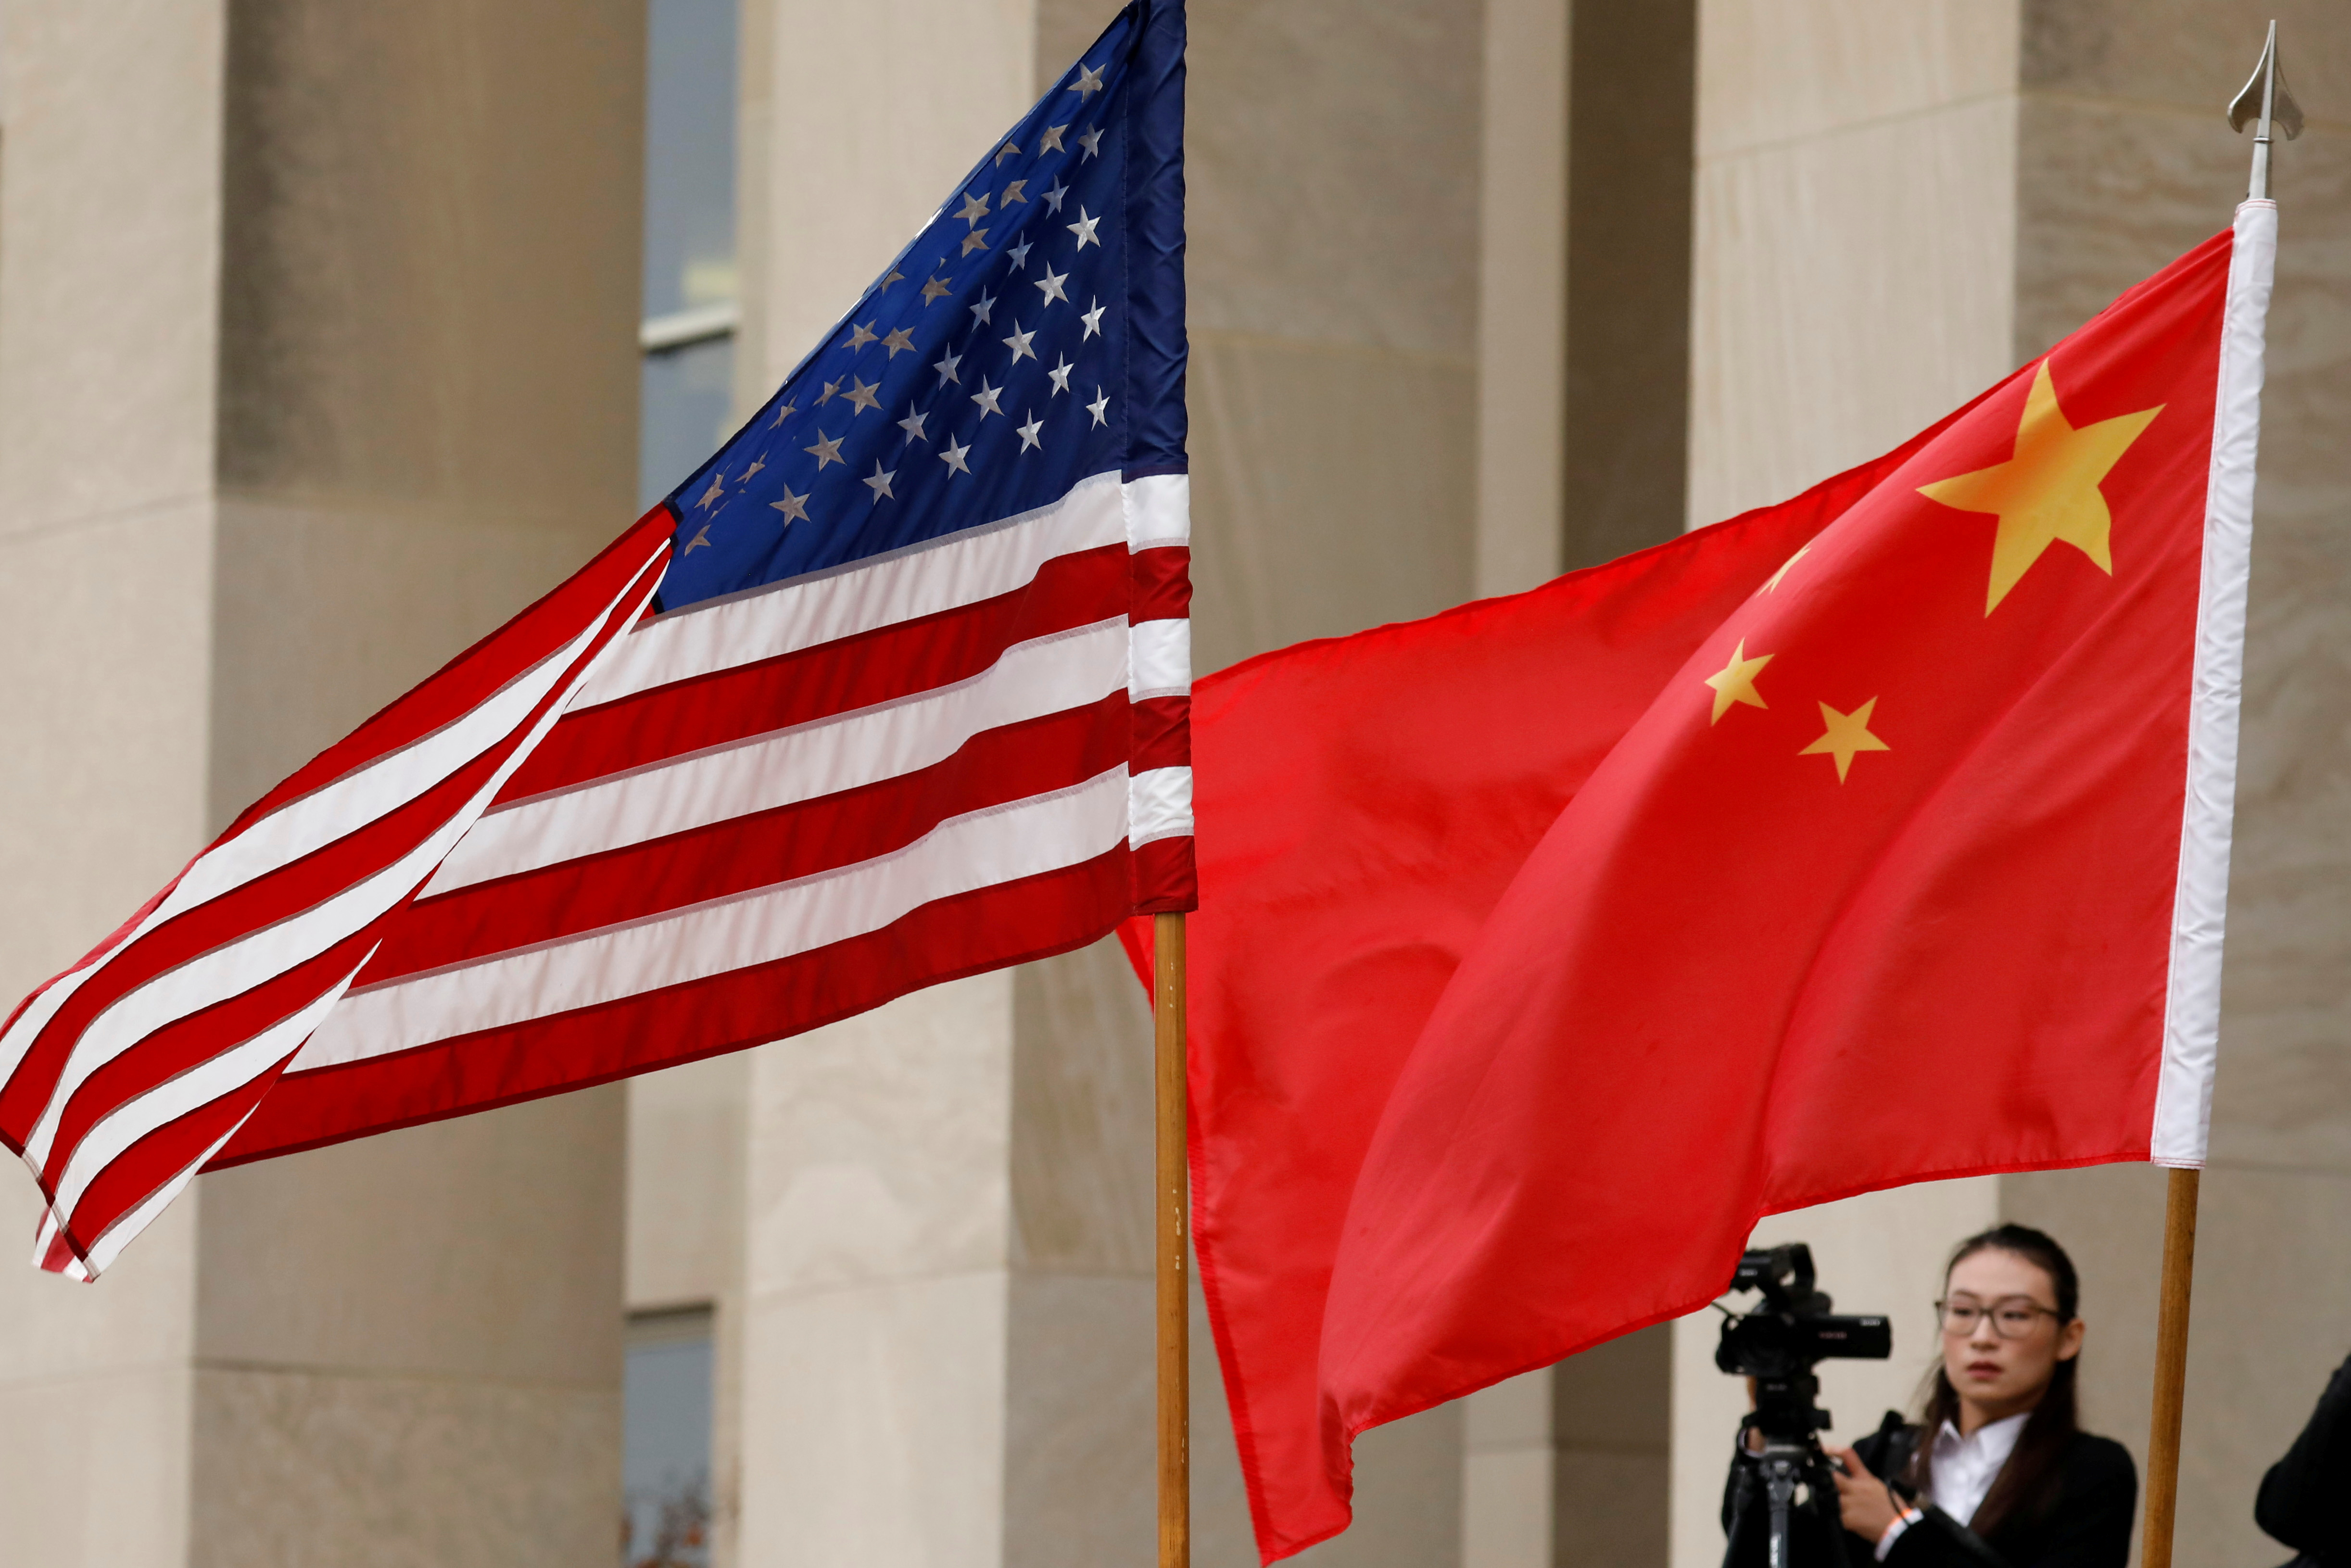 FILE PHOTO: U.S. and Chinese flags are seen before a meeting between senior defence officials from both countries at the Pentagon in Arlington, Virginia, U.S., November 9, 2018. REUTERS/Yuri Gripas/File Photo